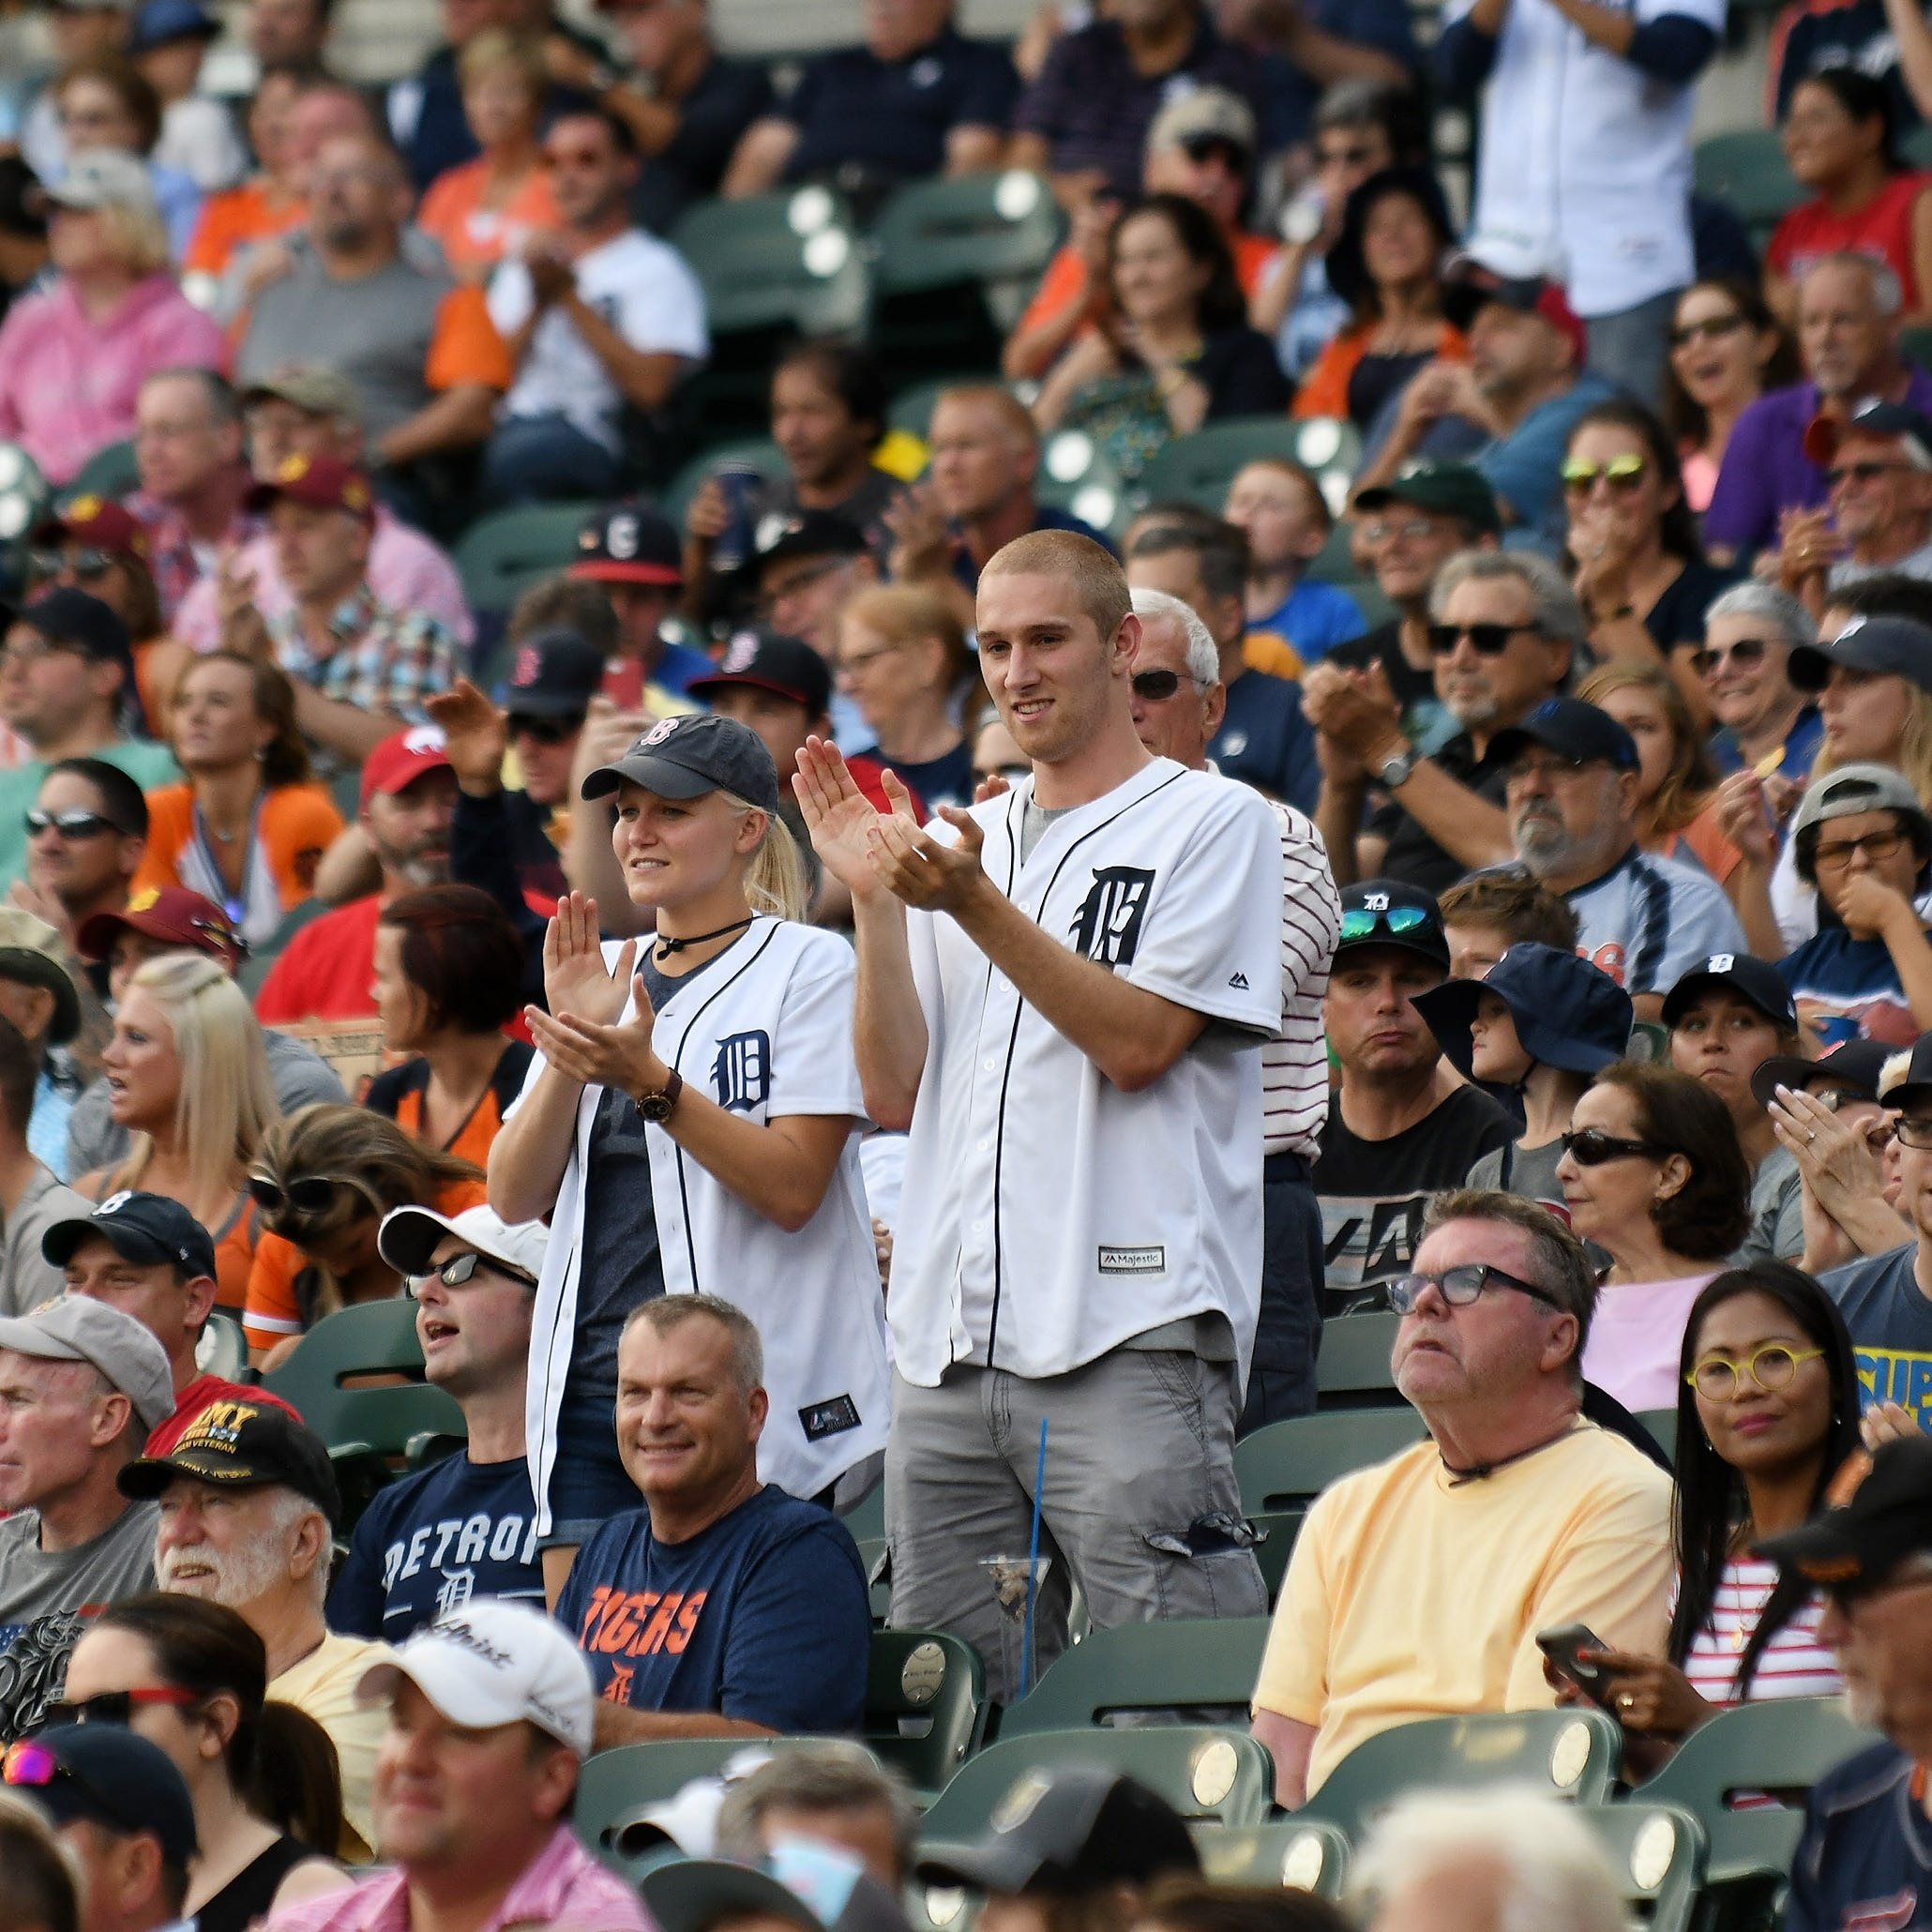 Tigers move to mobile-only entry for 2019 games at Comerica Park